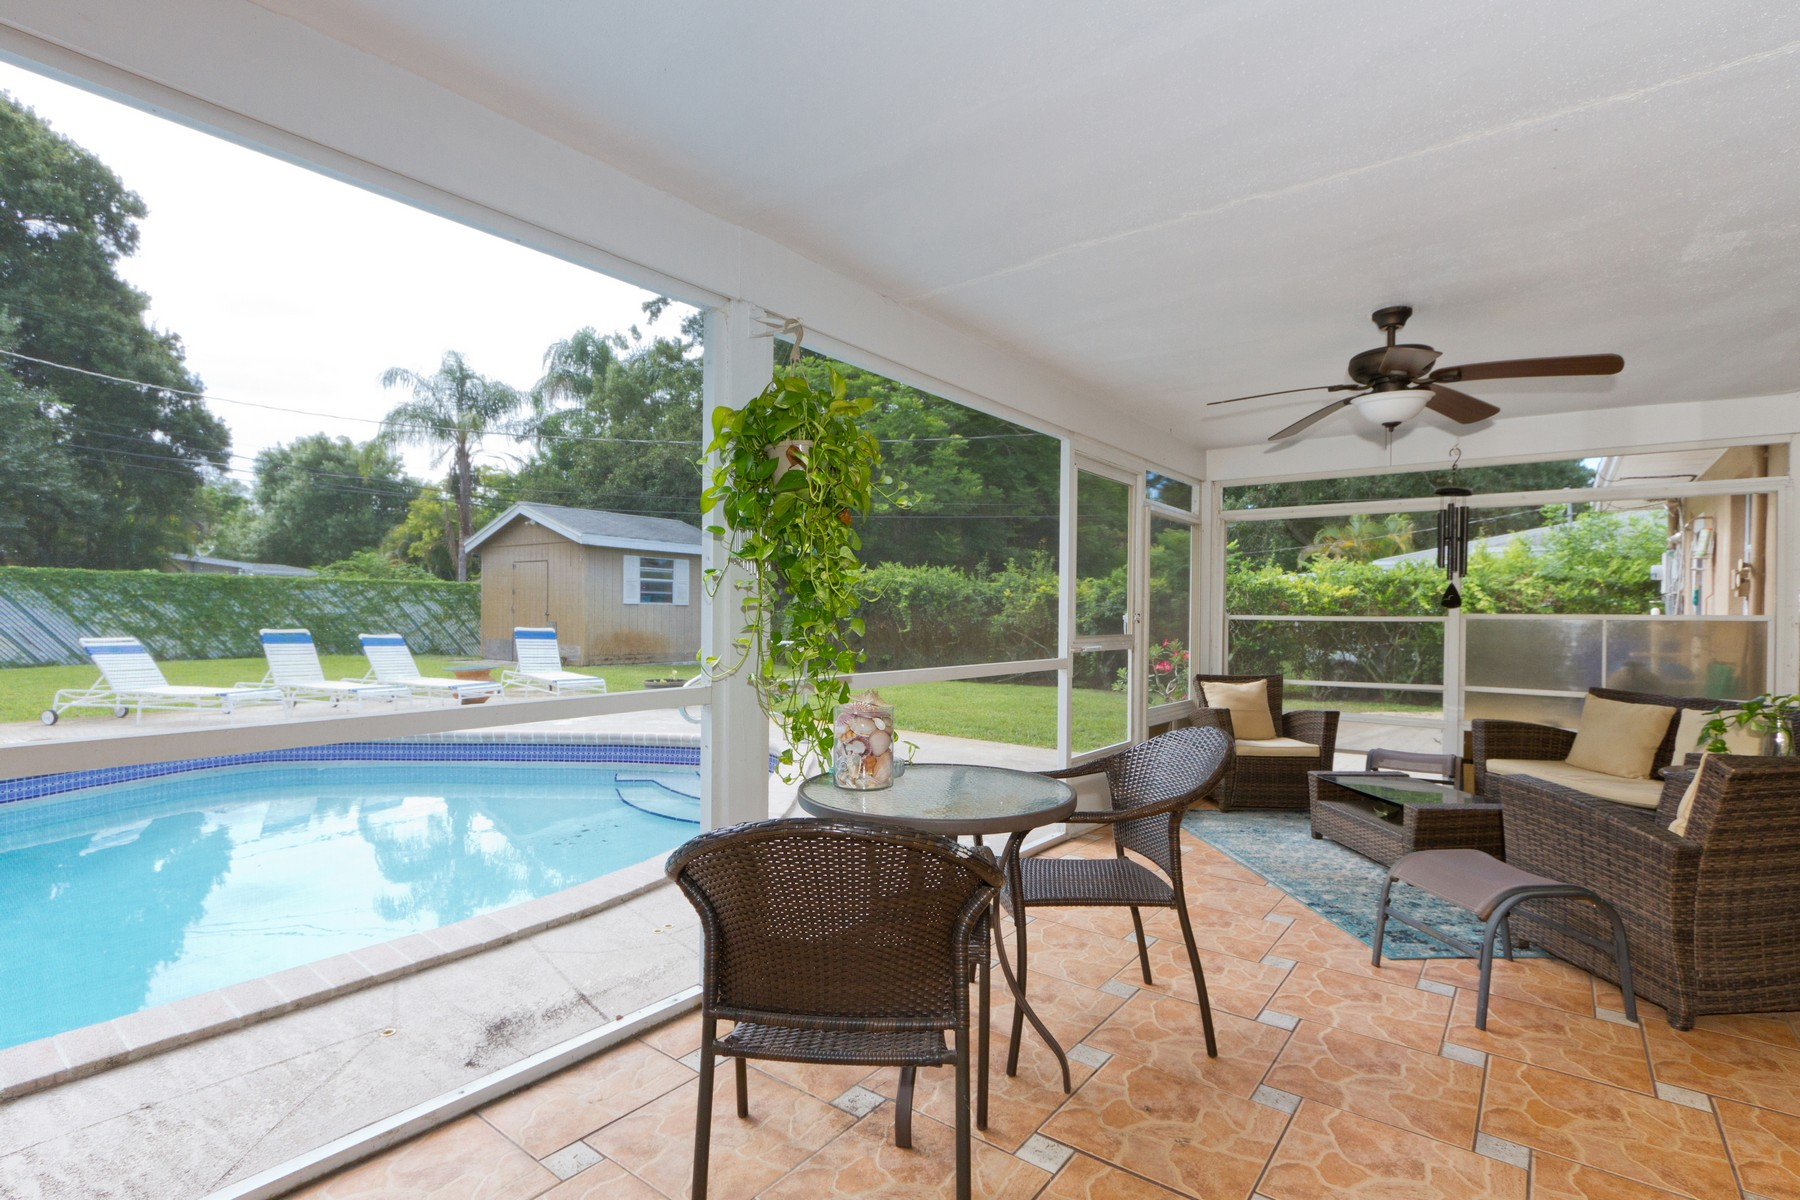 Additional photo for property listing at Florida Charm 1836 32nd Avenue Vero Beach, Florida 32960 United States